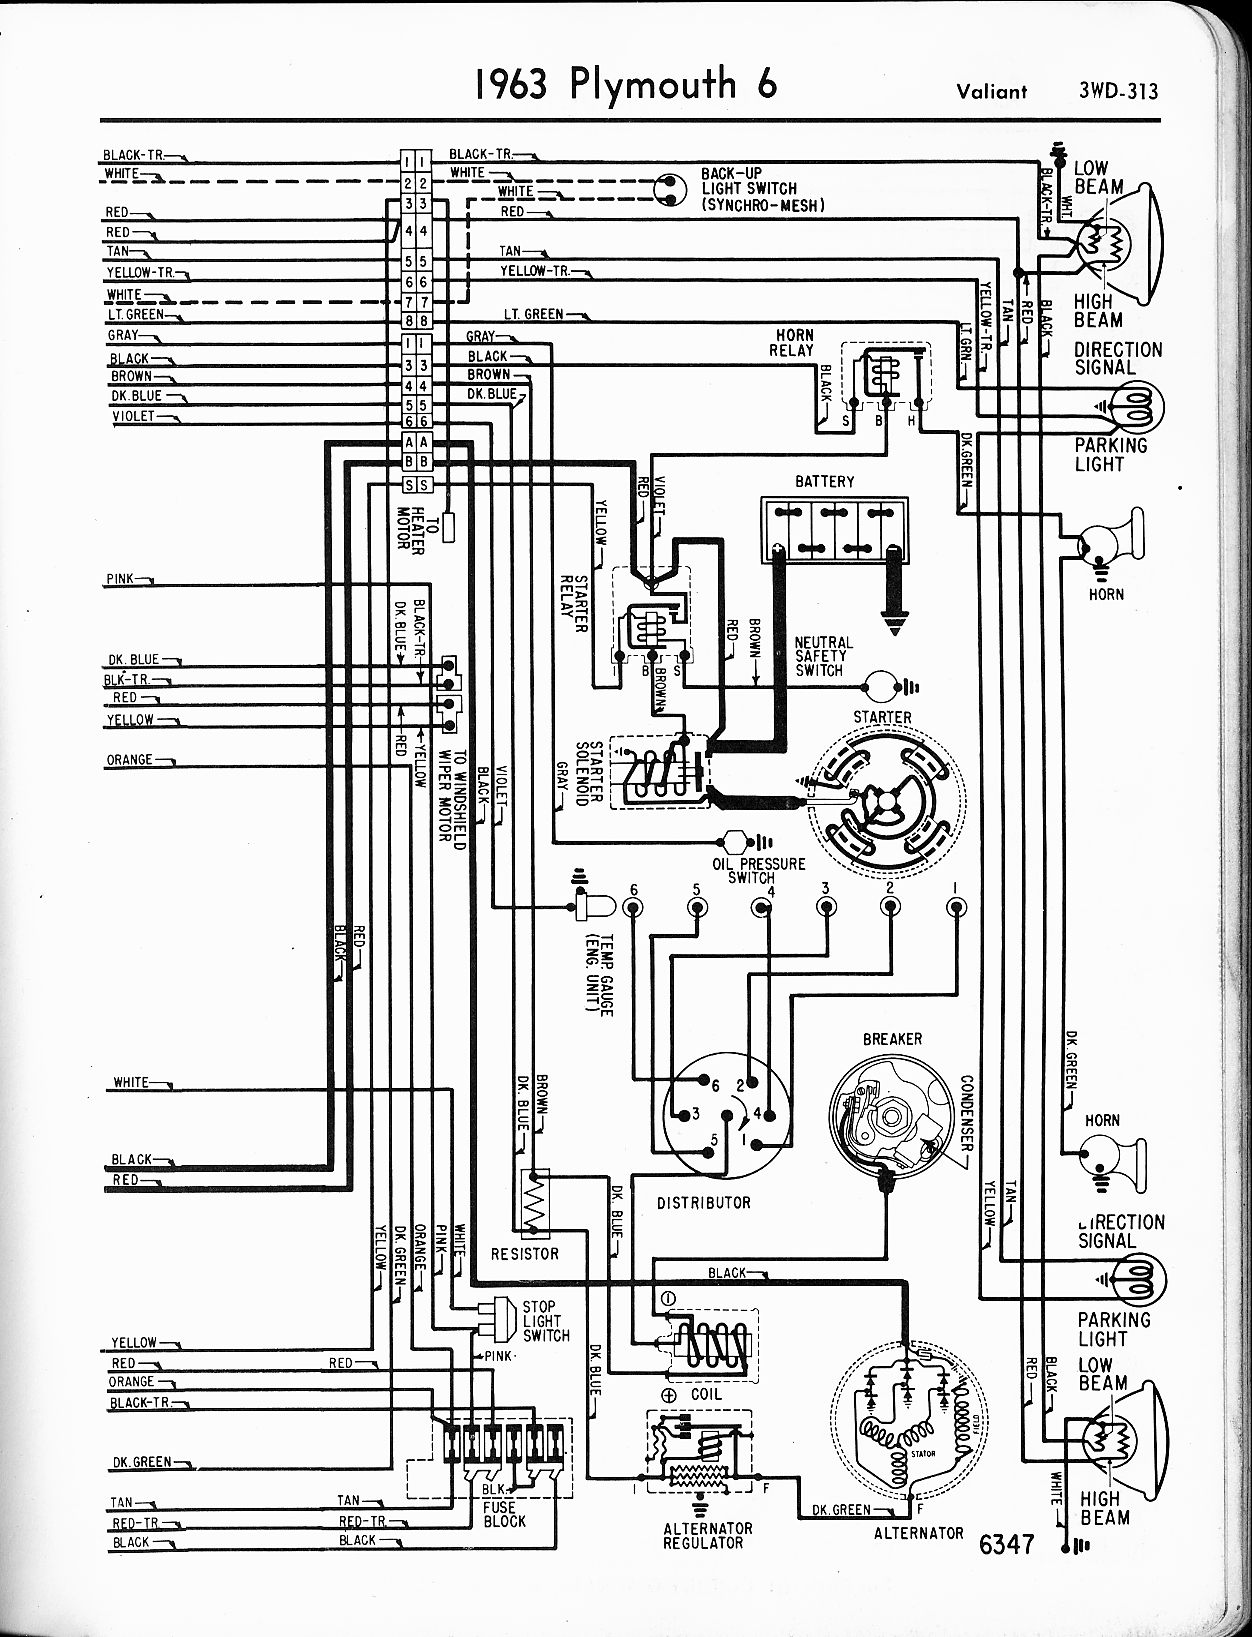 MWire5765 313 1956 1965 plymouth wiring the old car manual project 1954 plymouth belvedere wiring diagram at eliteediting.co